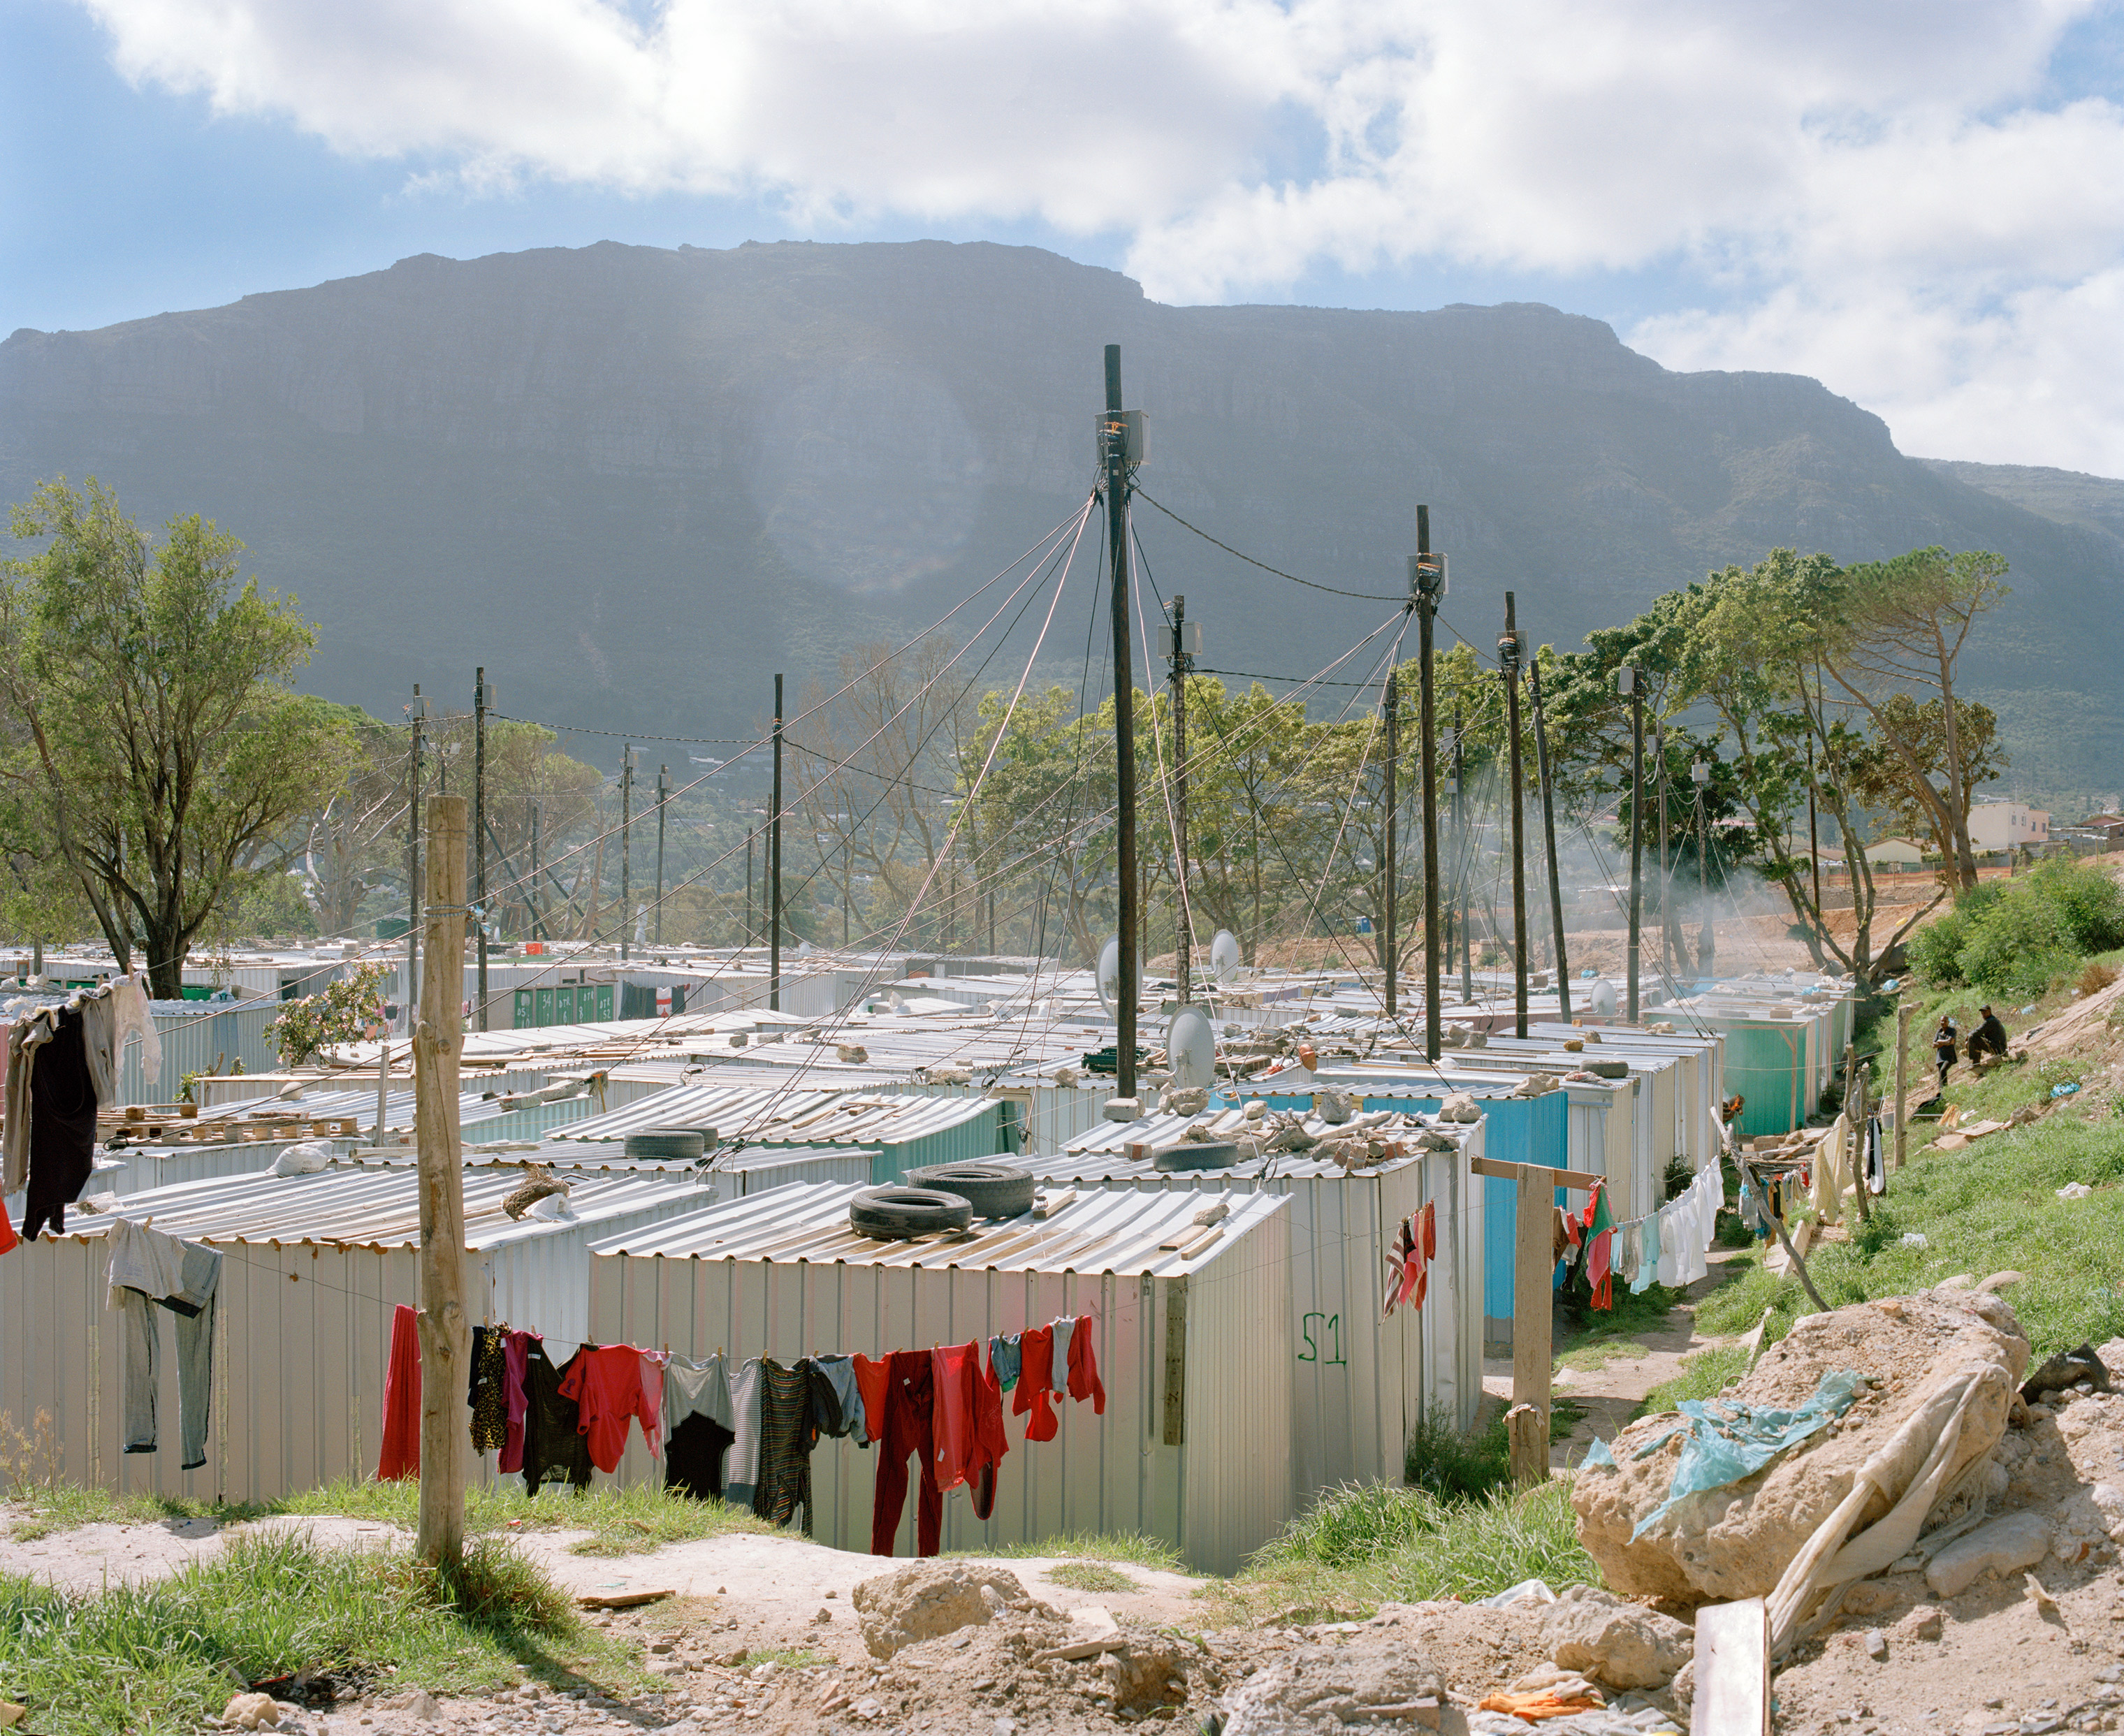 The informal settlement of Imizamo Yethu overlooks Hout Bay, apicturesque suburb of CapeTown.